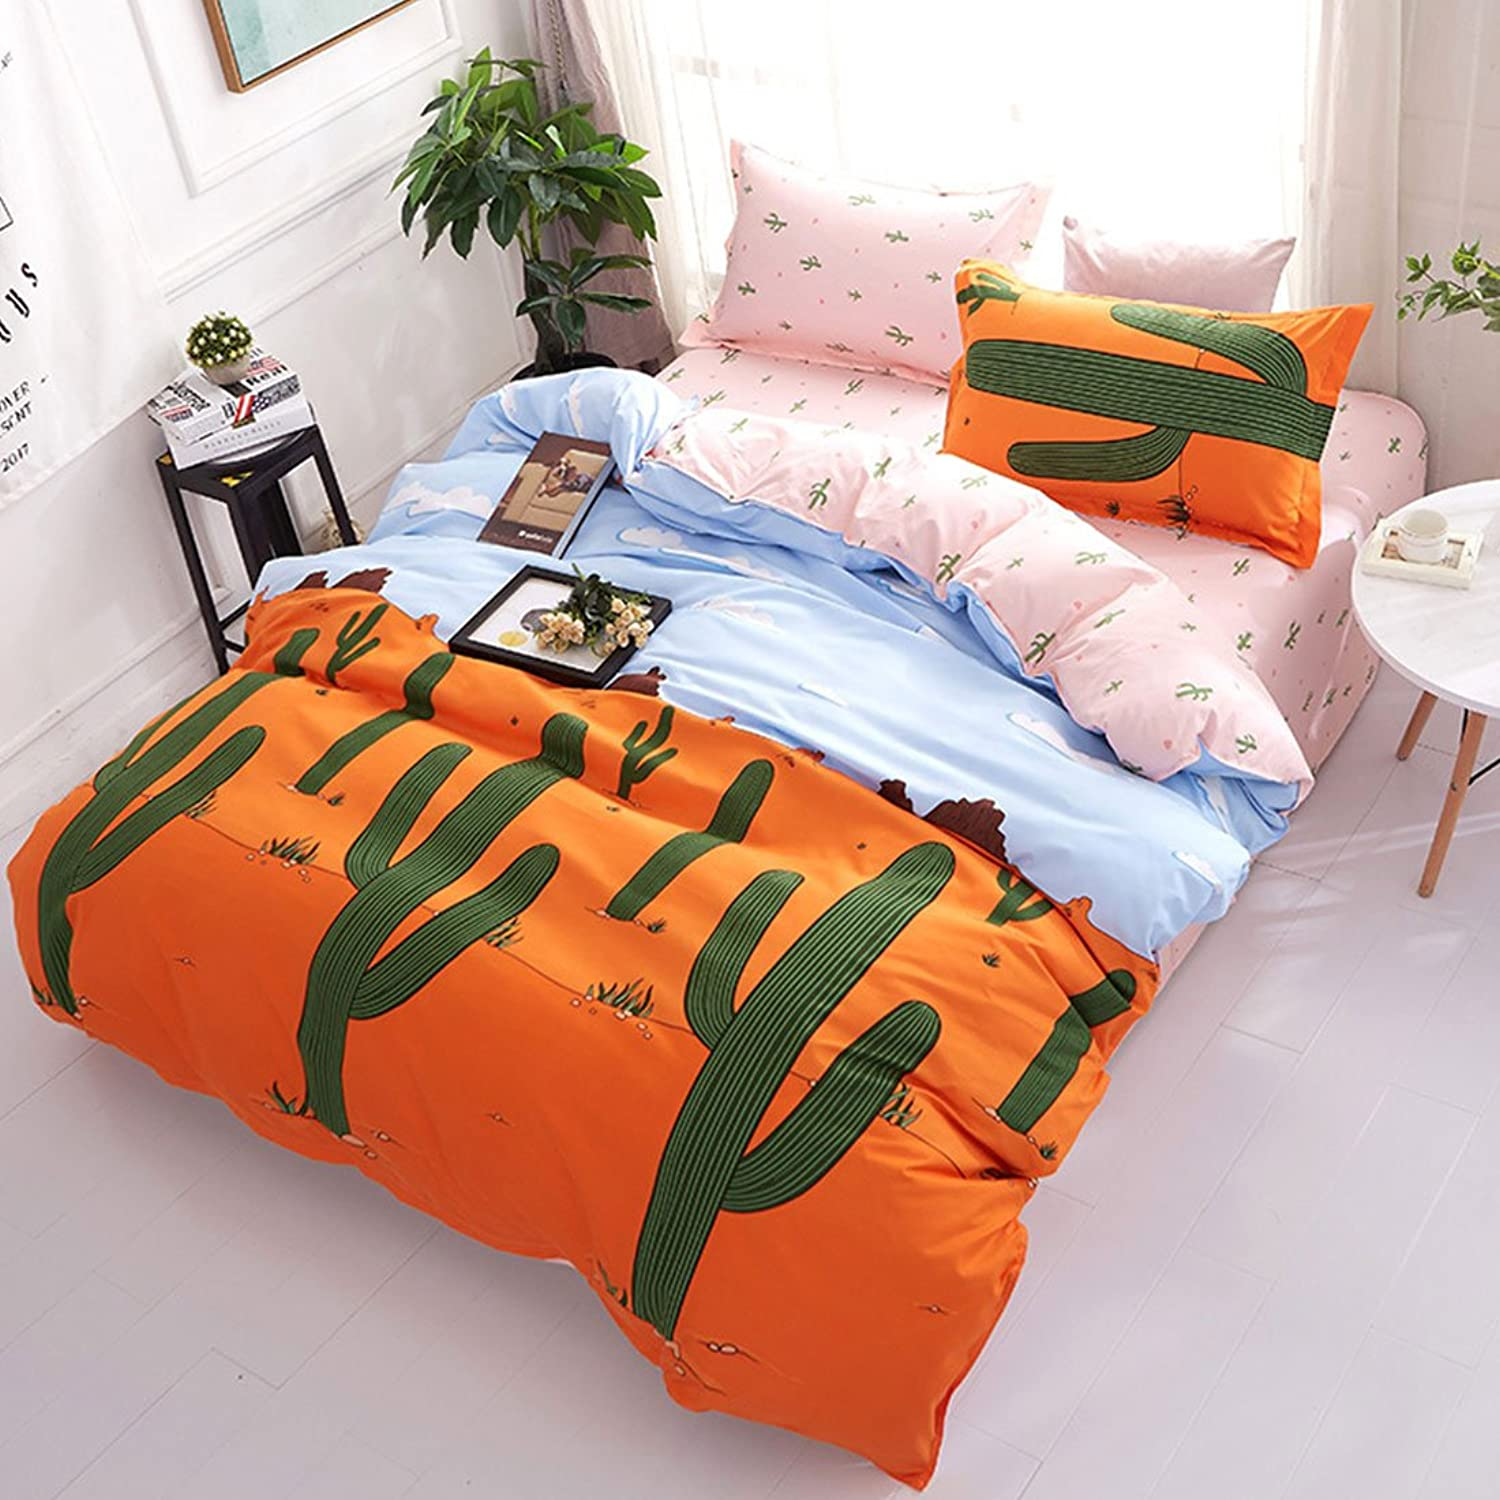 Libaoge 3 Piece Reversible Bed Sheets Set, Green Plants Cactus Print, 1 Duvet Cover and 2 Pillow Cases